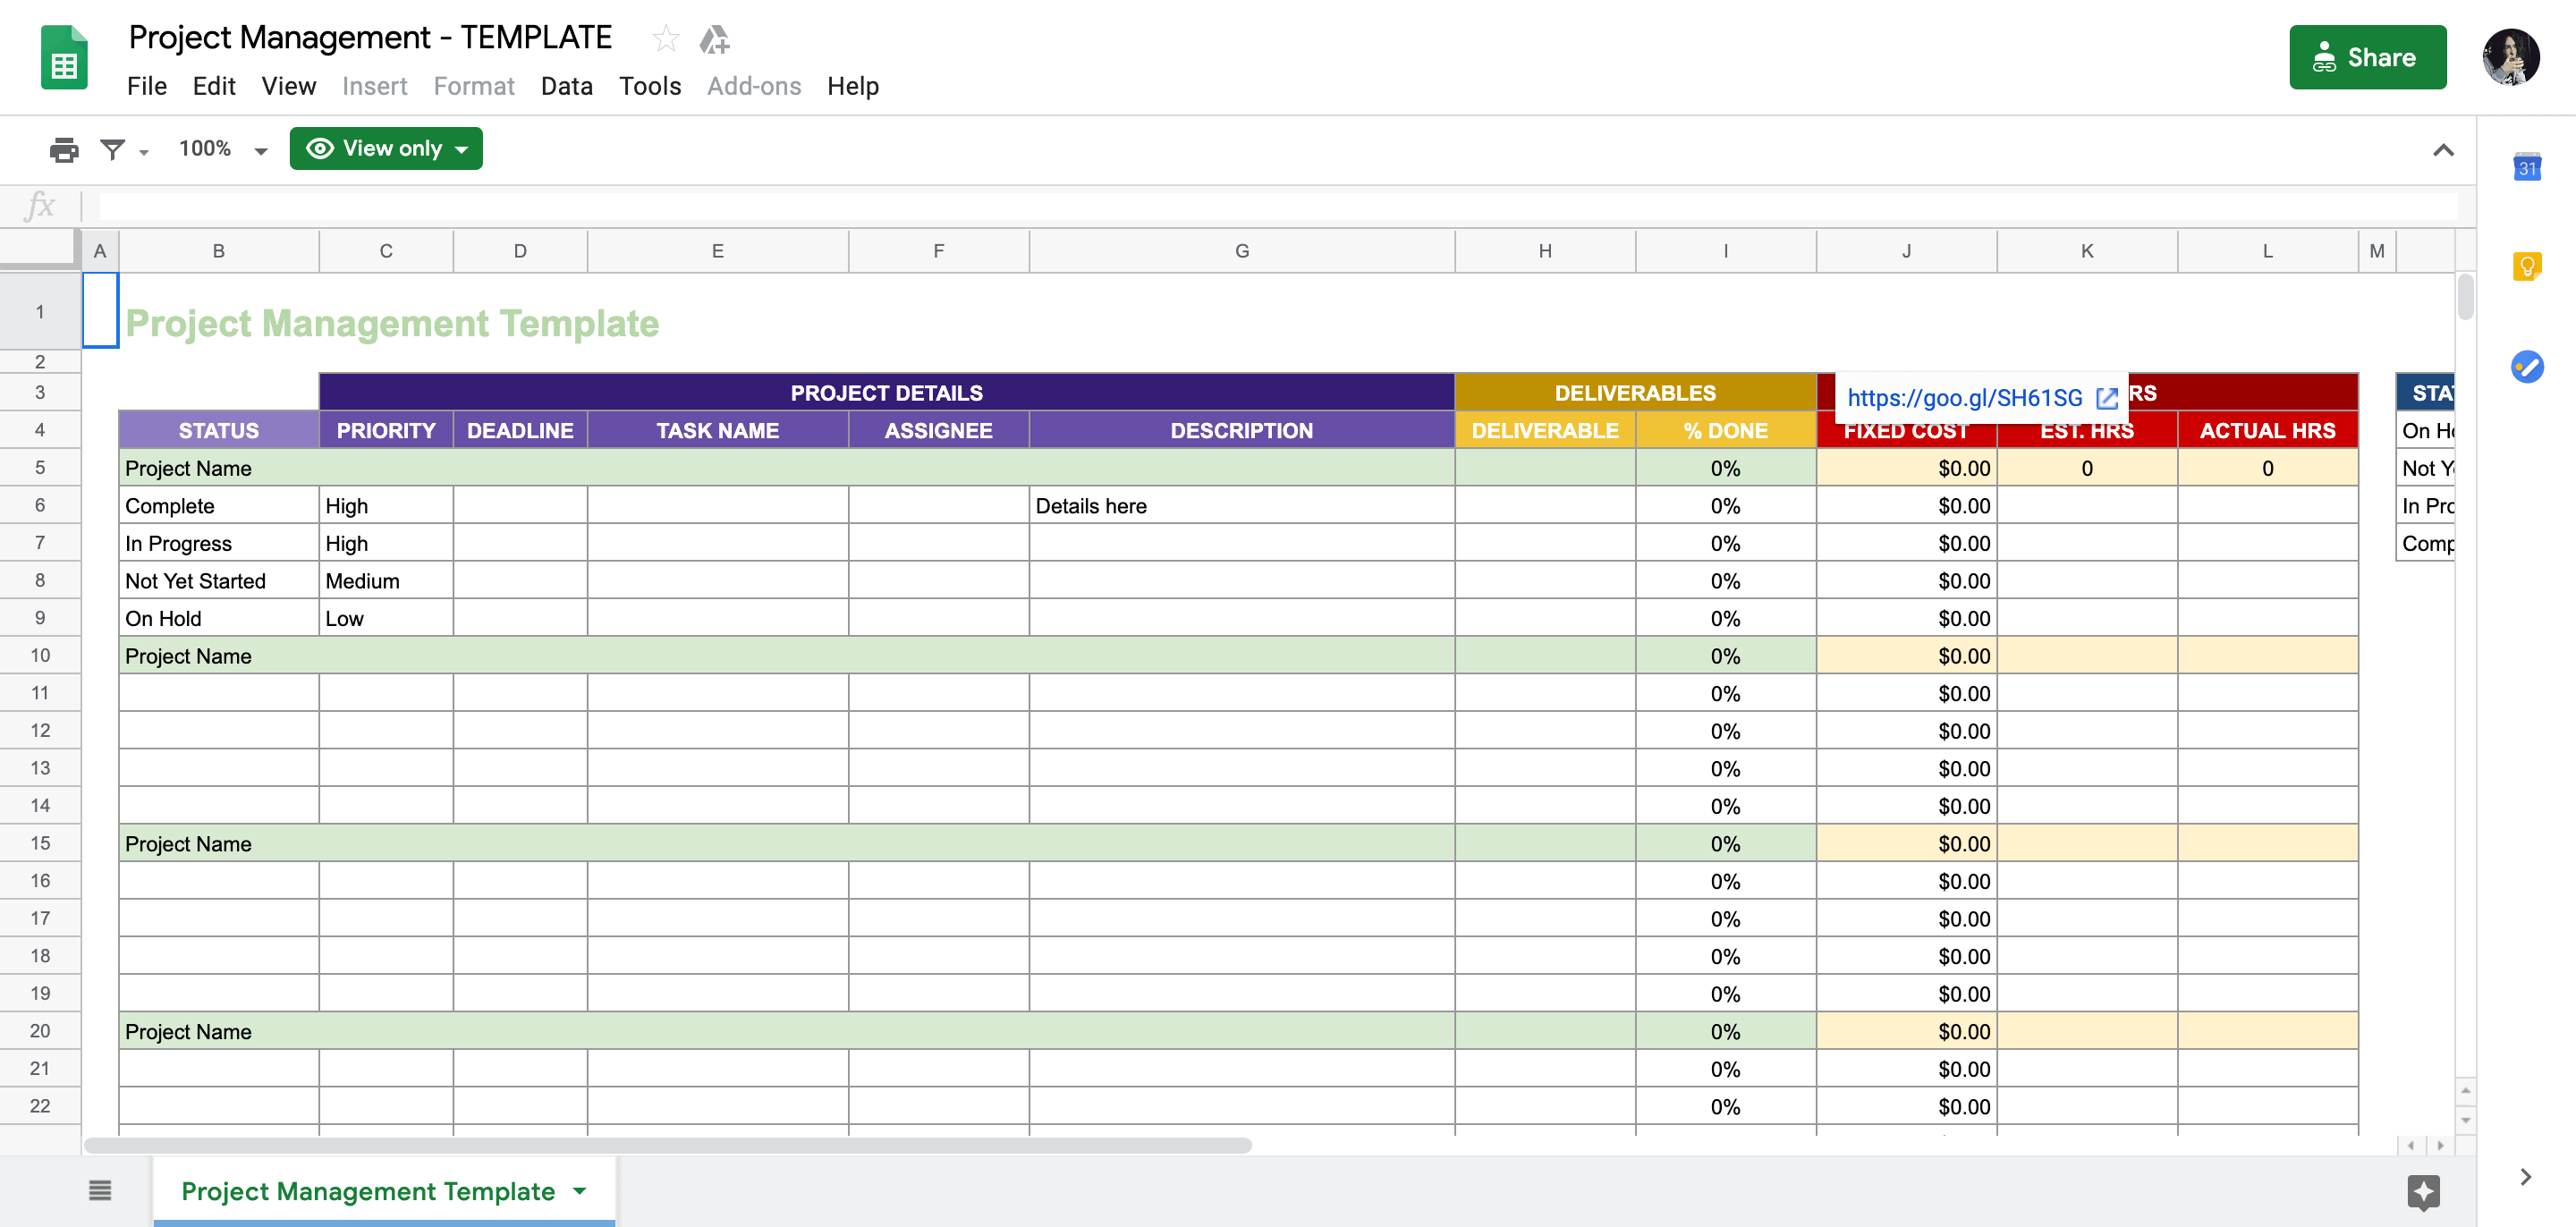 Project Plan Template Google Sheets from sheetsformarketers.com